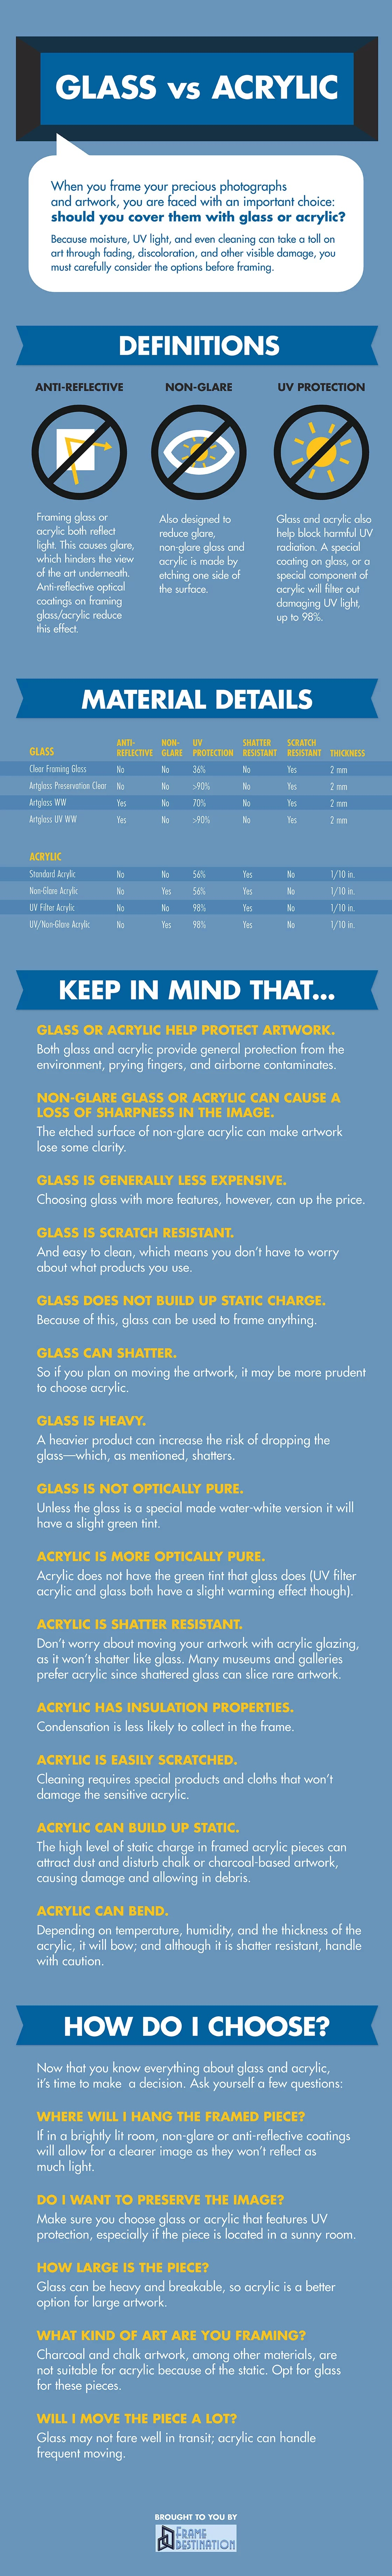 Glass vs Acrylic: How to Choose a Framing Material [INFOGRAPHIC]